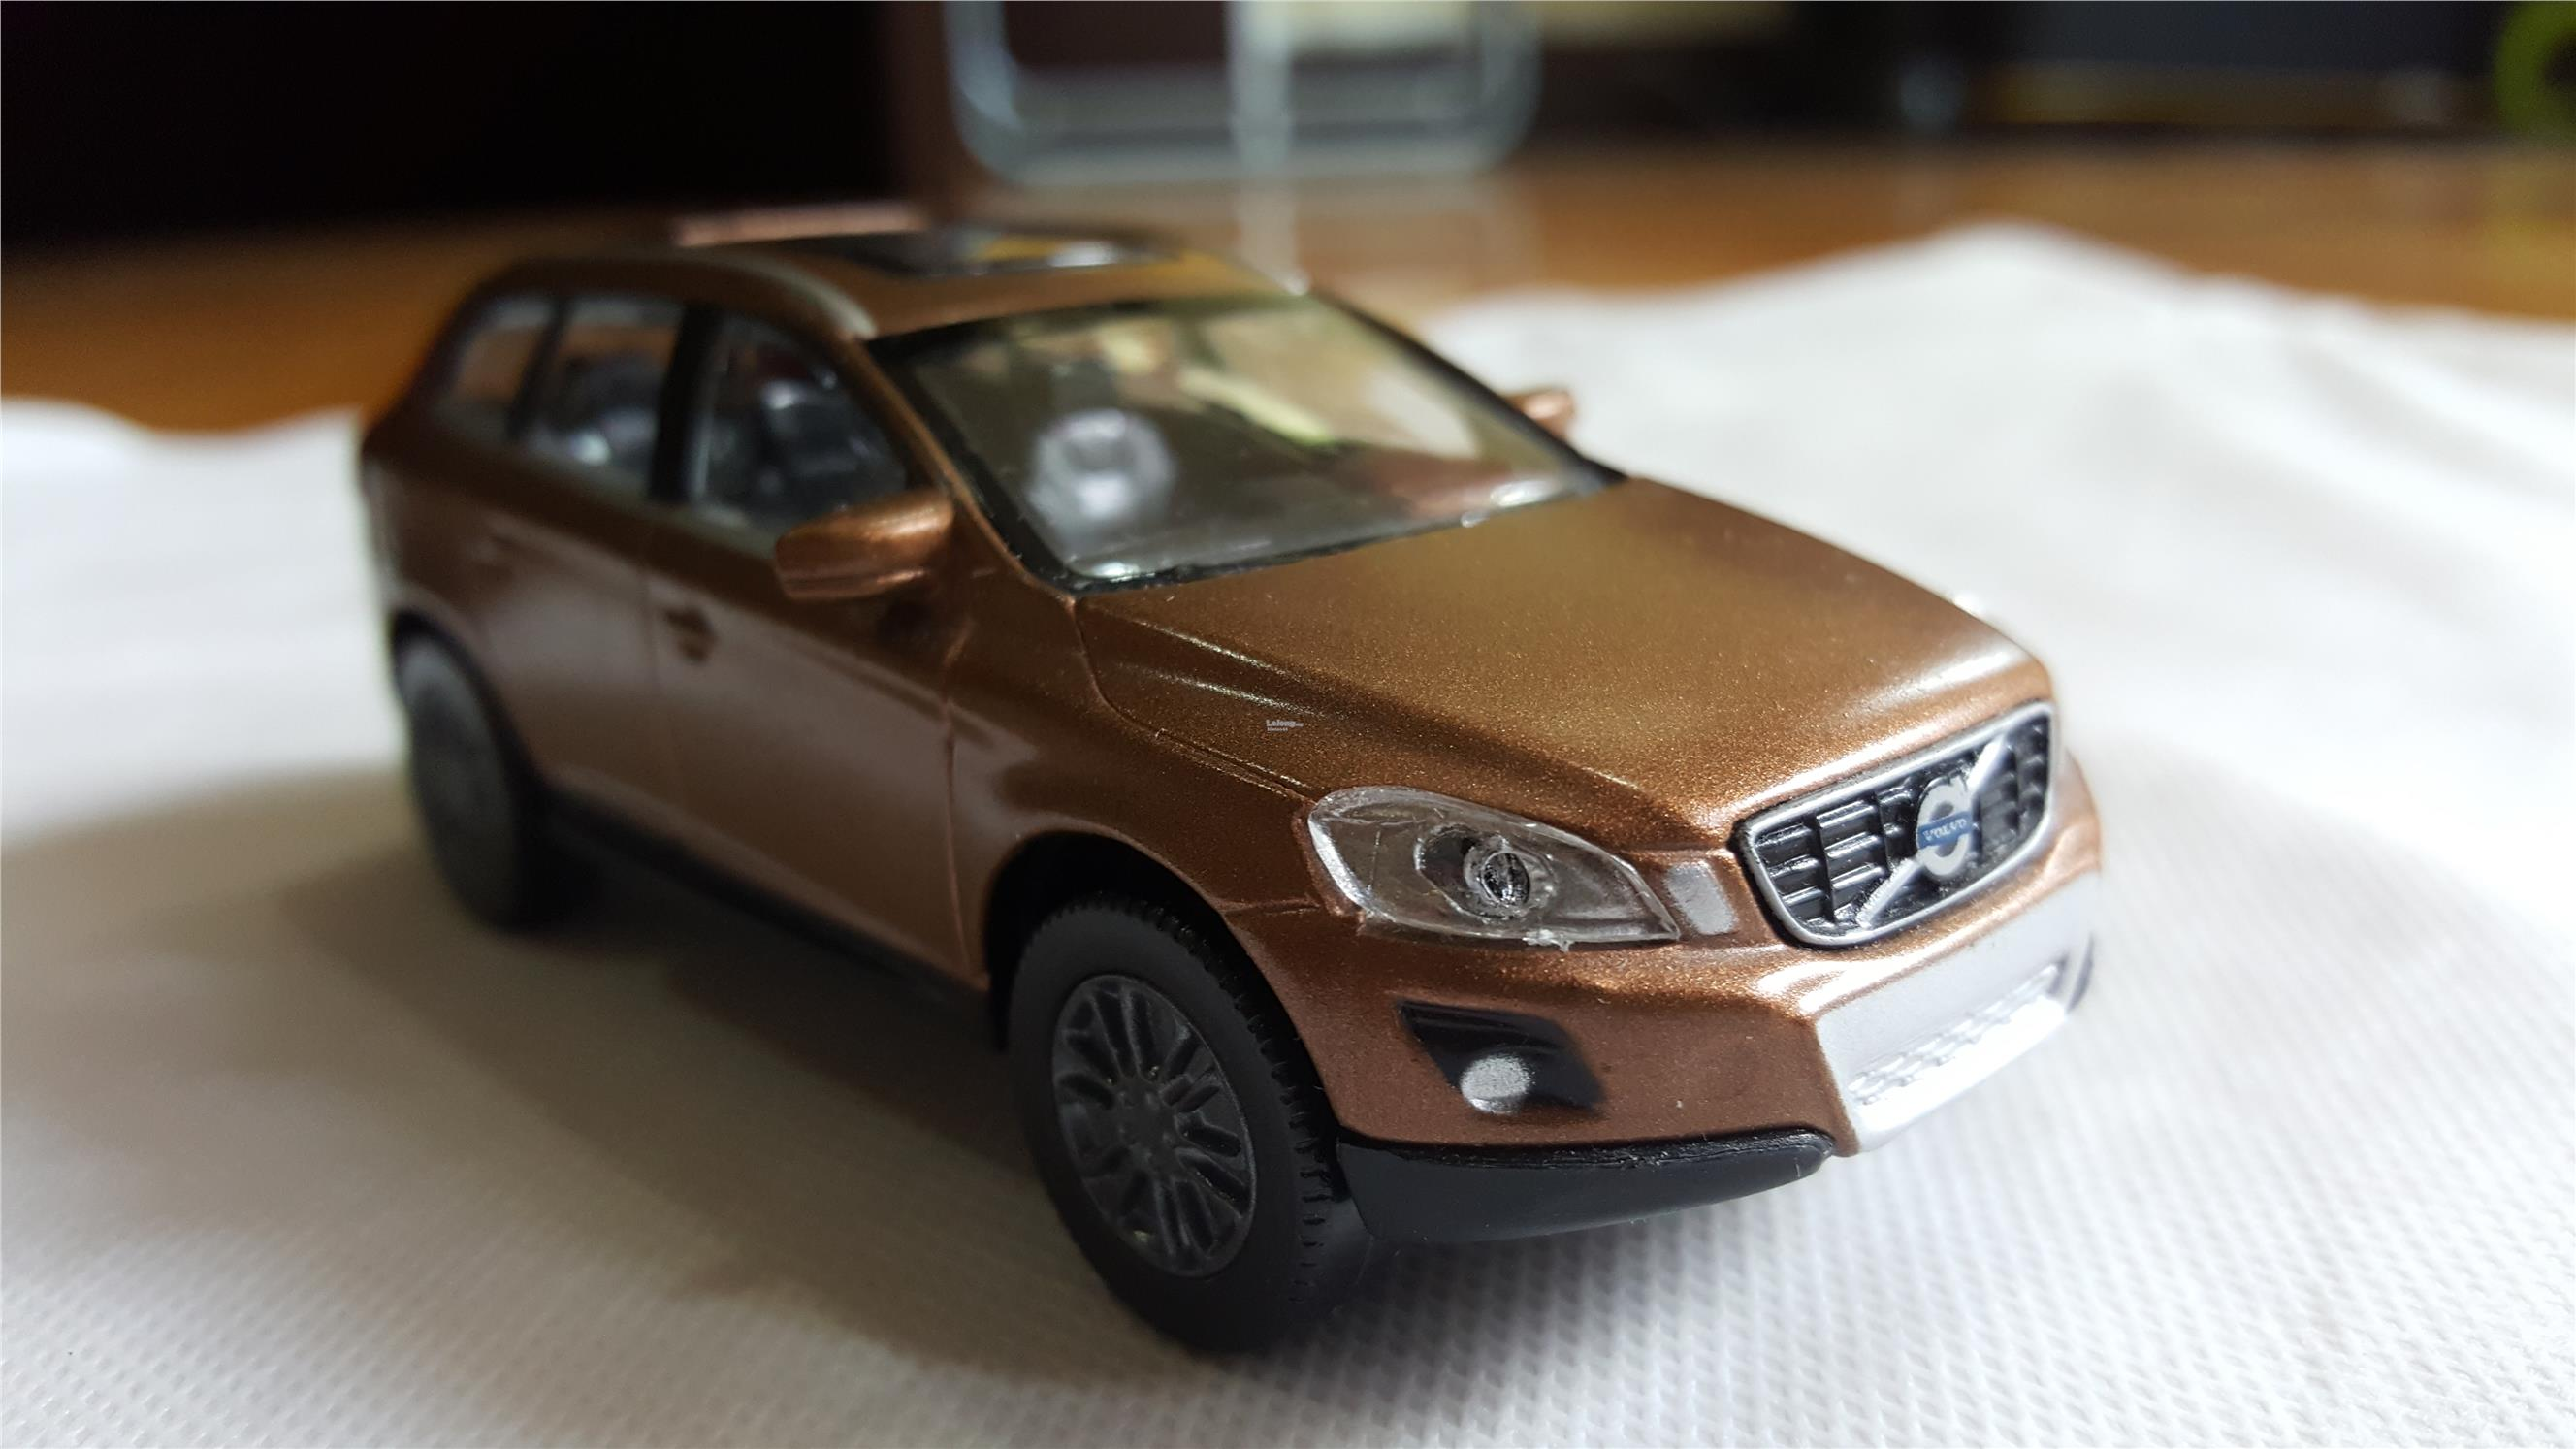 Hand Die Cast Model Volvo Xc Toy Car Collection Eileton Eileton on Lincoln Continental Wiring Diagram Basic Guide